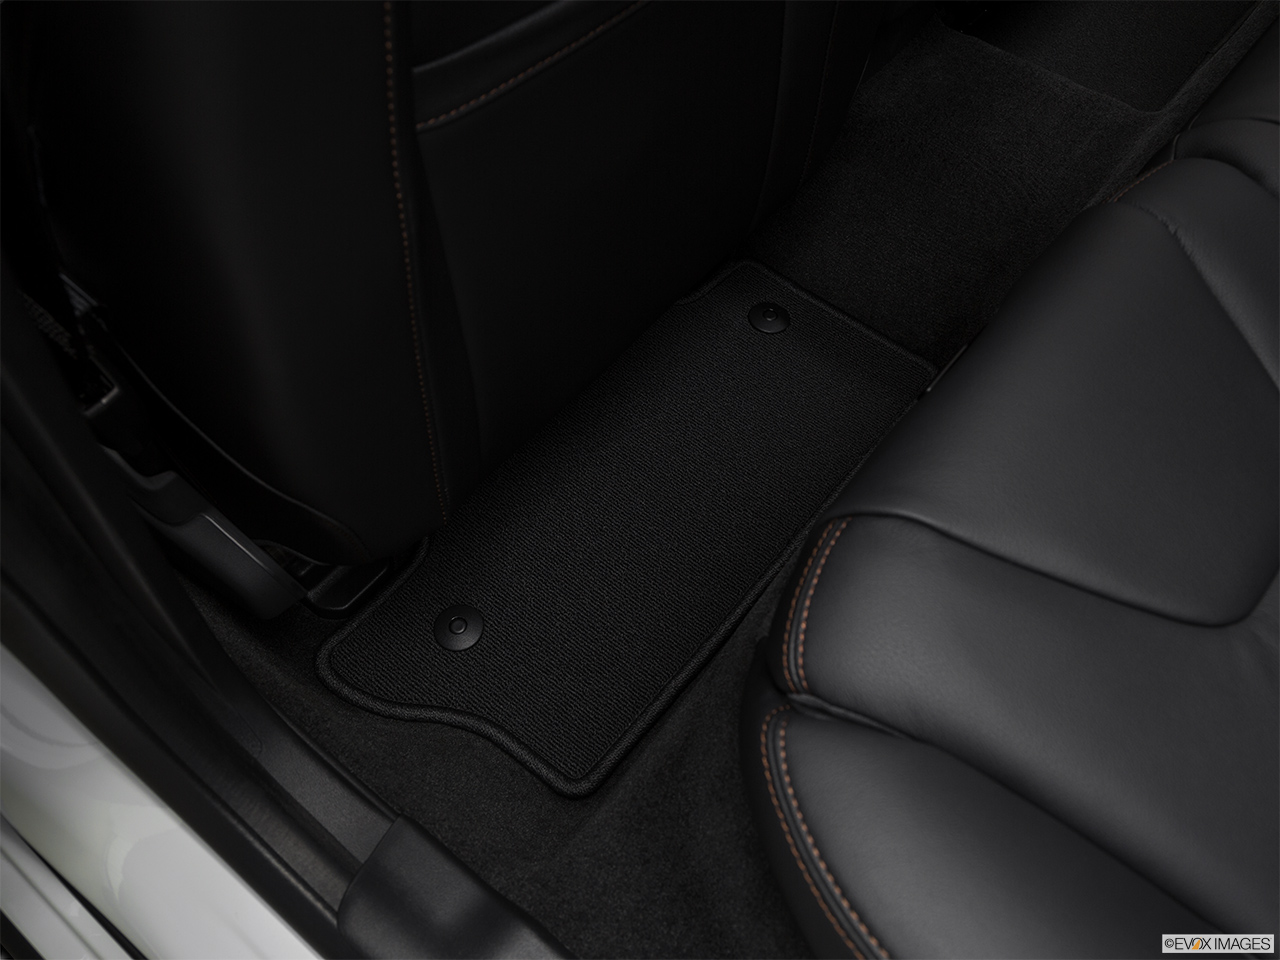 2018 Volvo V60 Cross Country T5 AWD Rear driver's side floor mat. Mid-seat level from outside looking in.